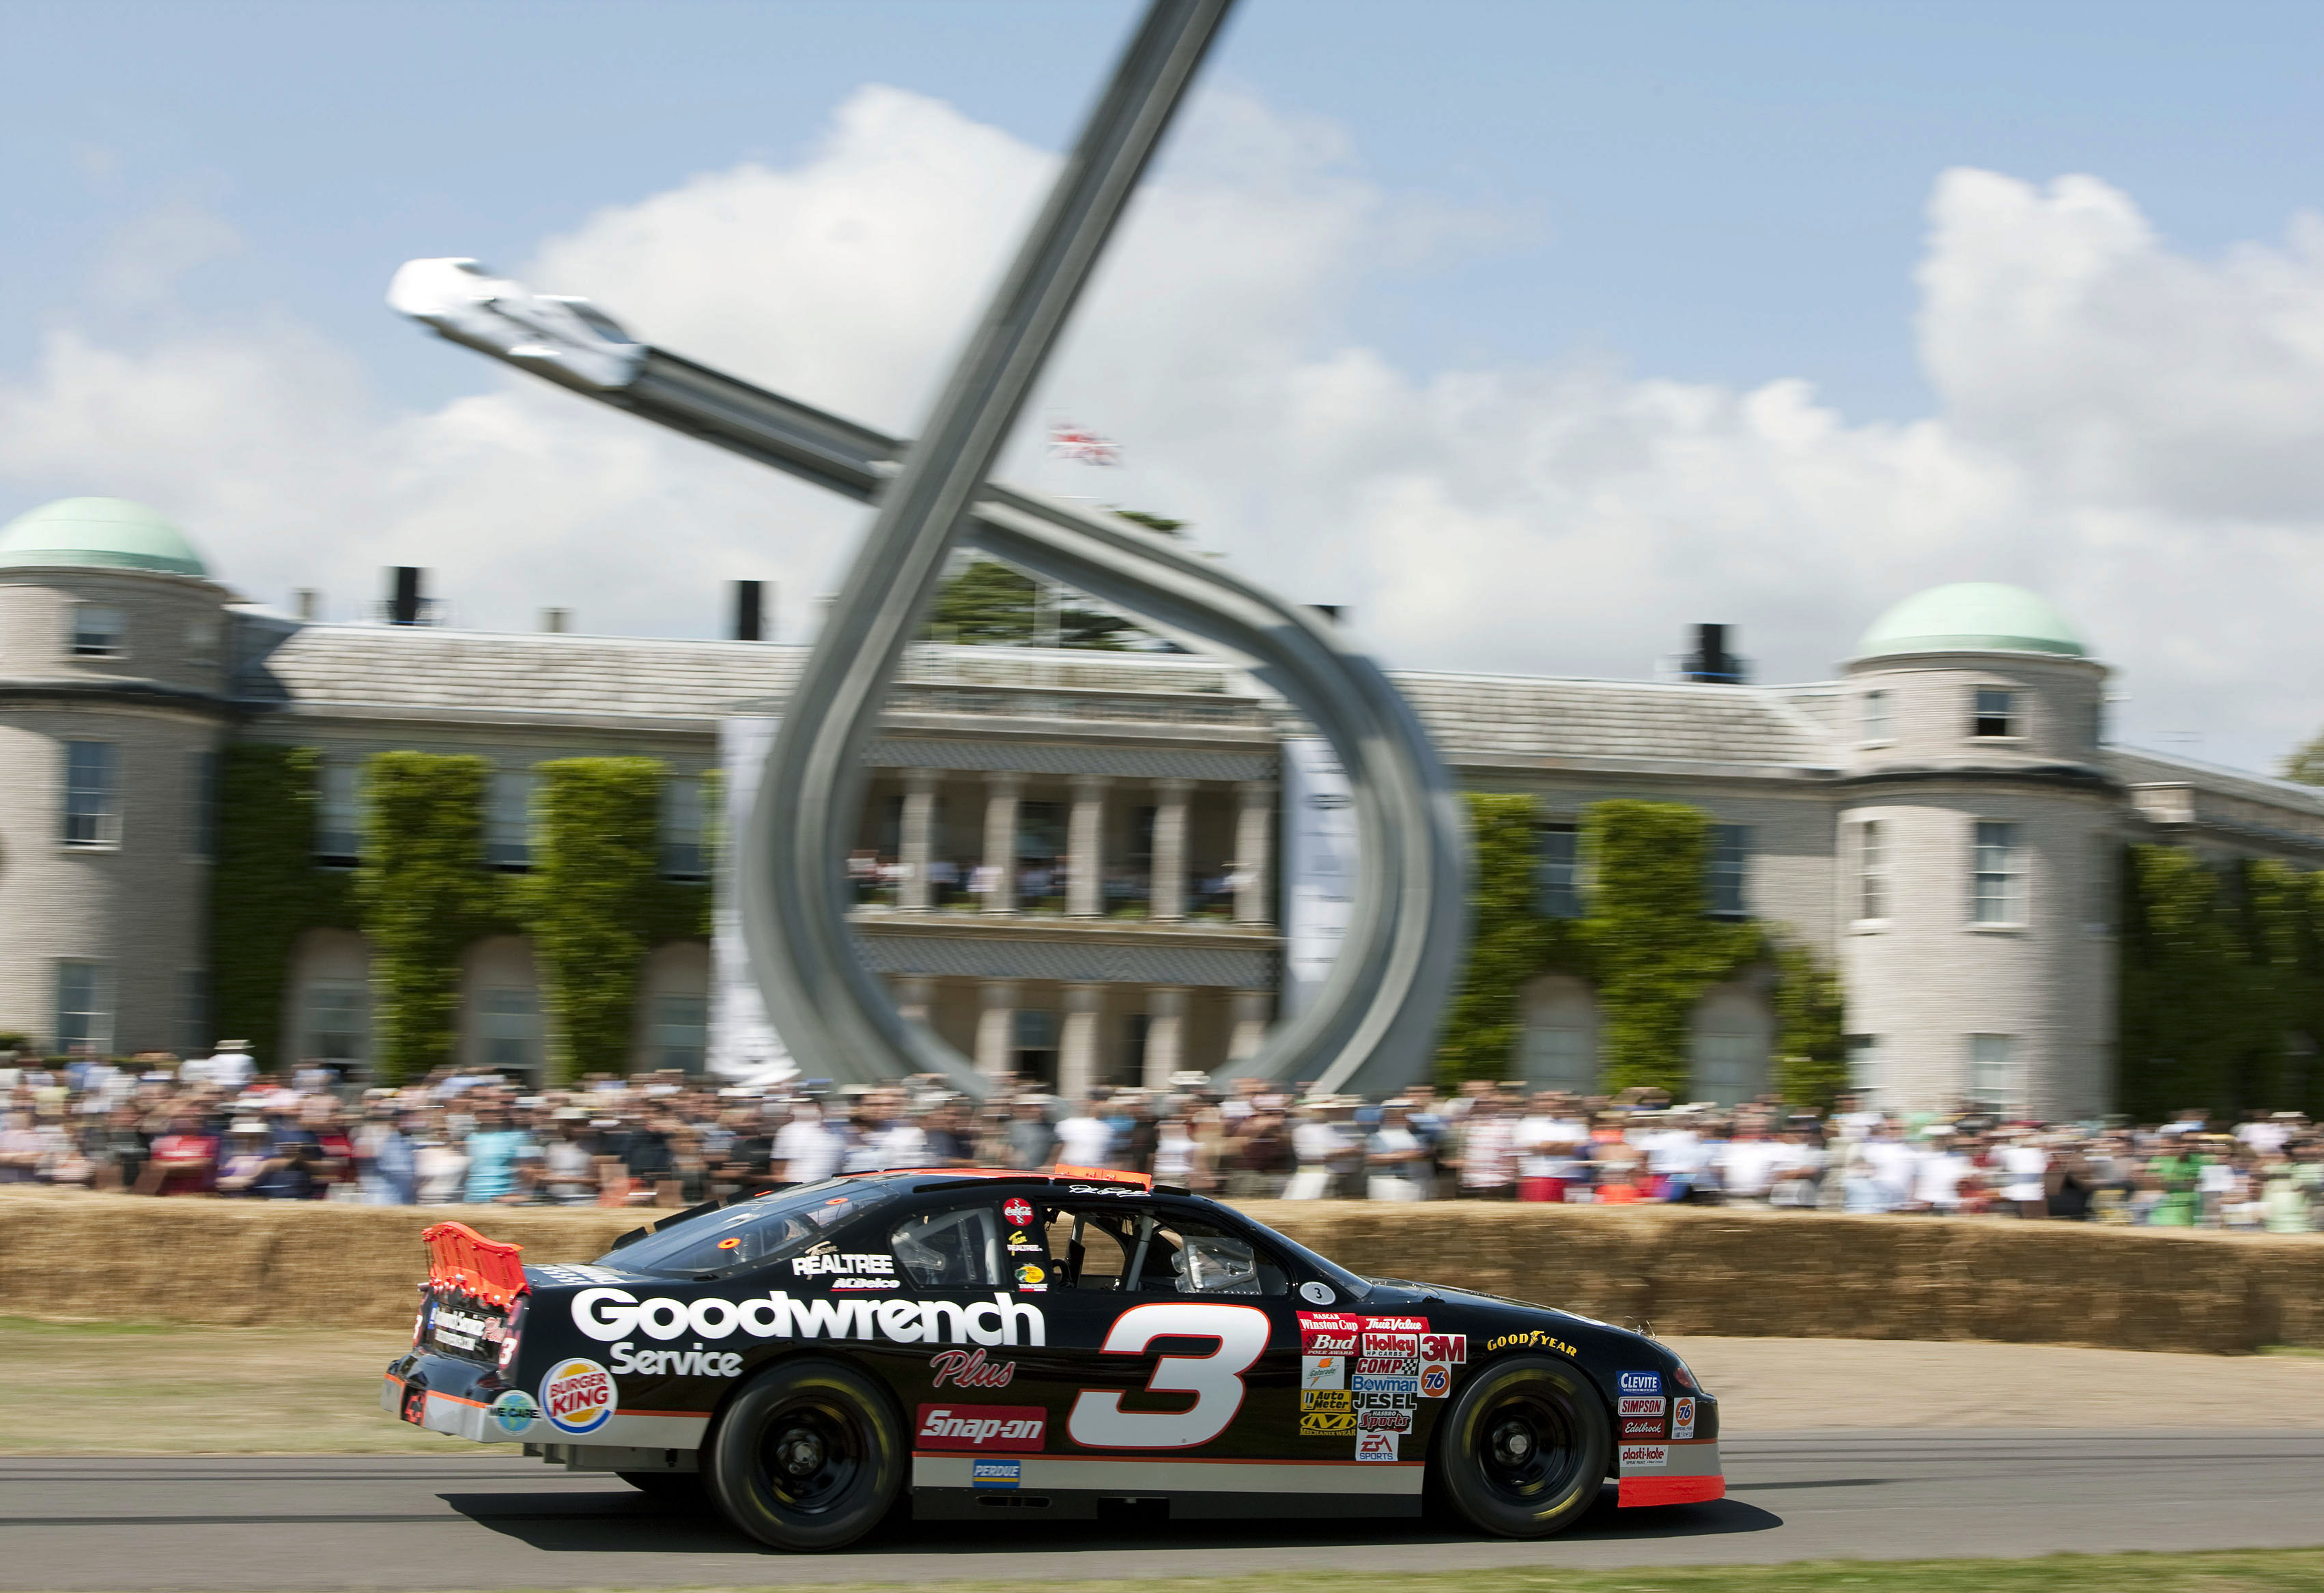 Goodwood's Festival of Speed is a fixture on the motor-racing calendar (Photo: Getty Images)